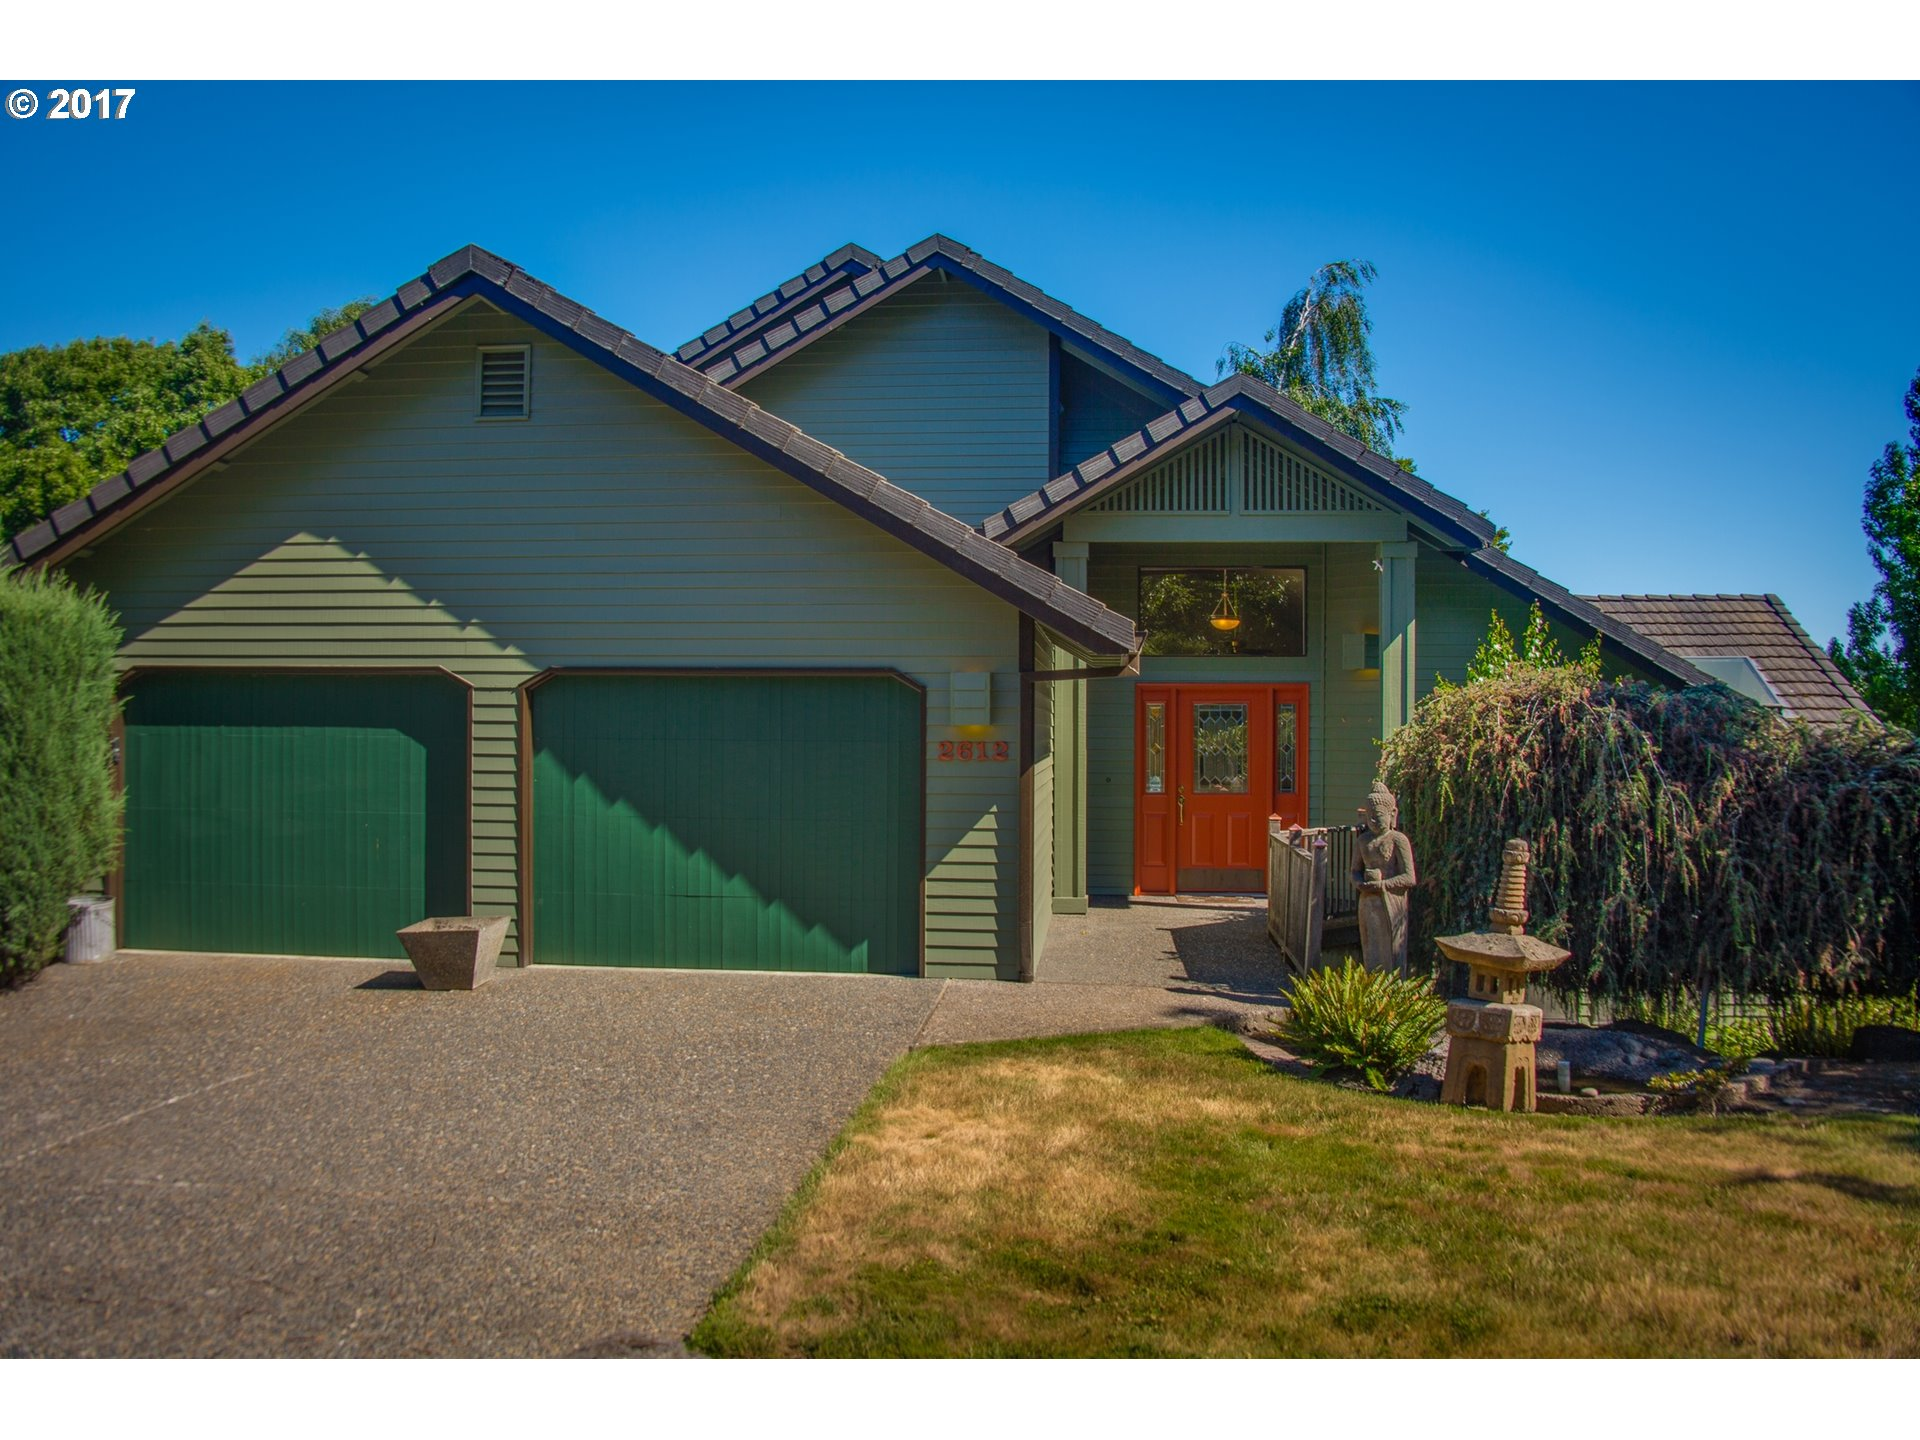 2612 ORCHARD HILL LN, Lake Oswego OR 97035